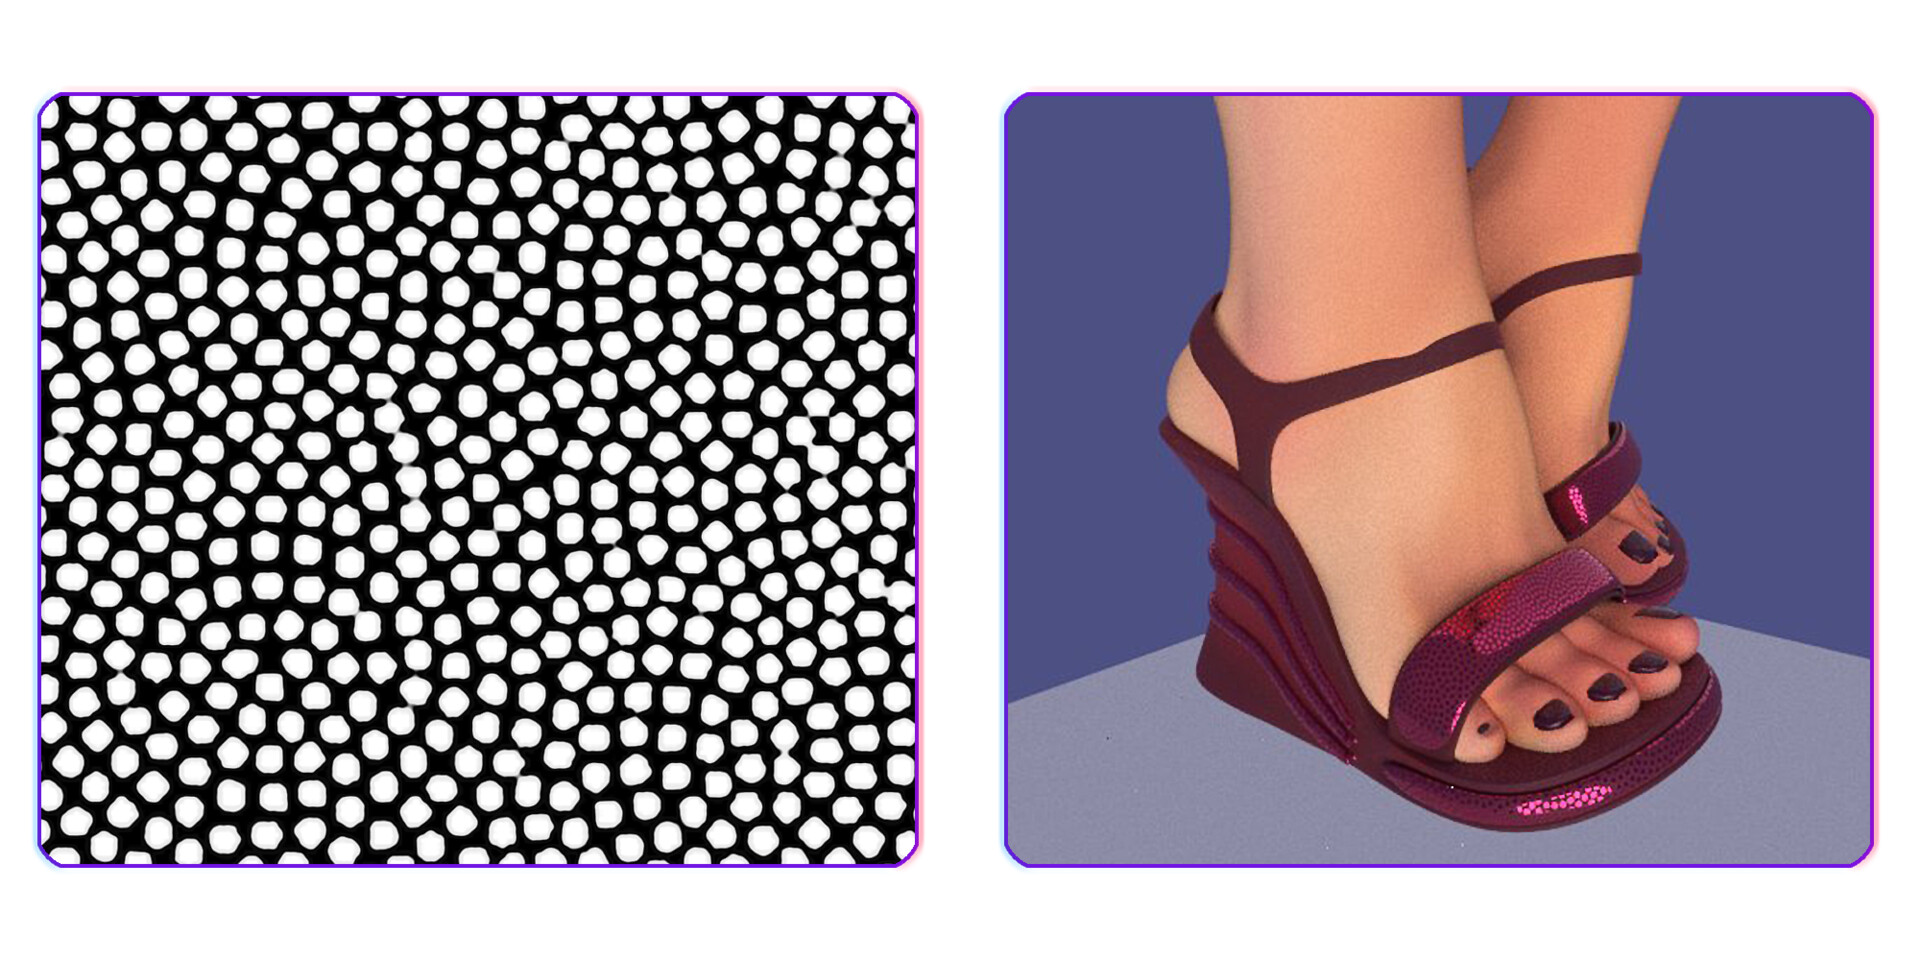 Shoe texturing